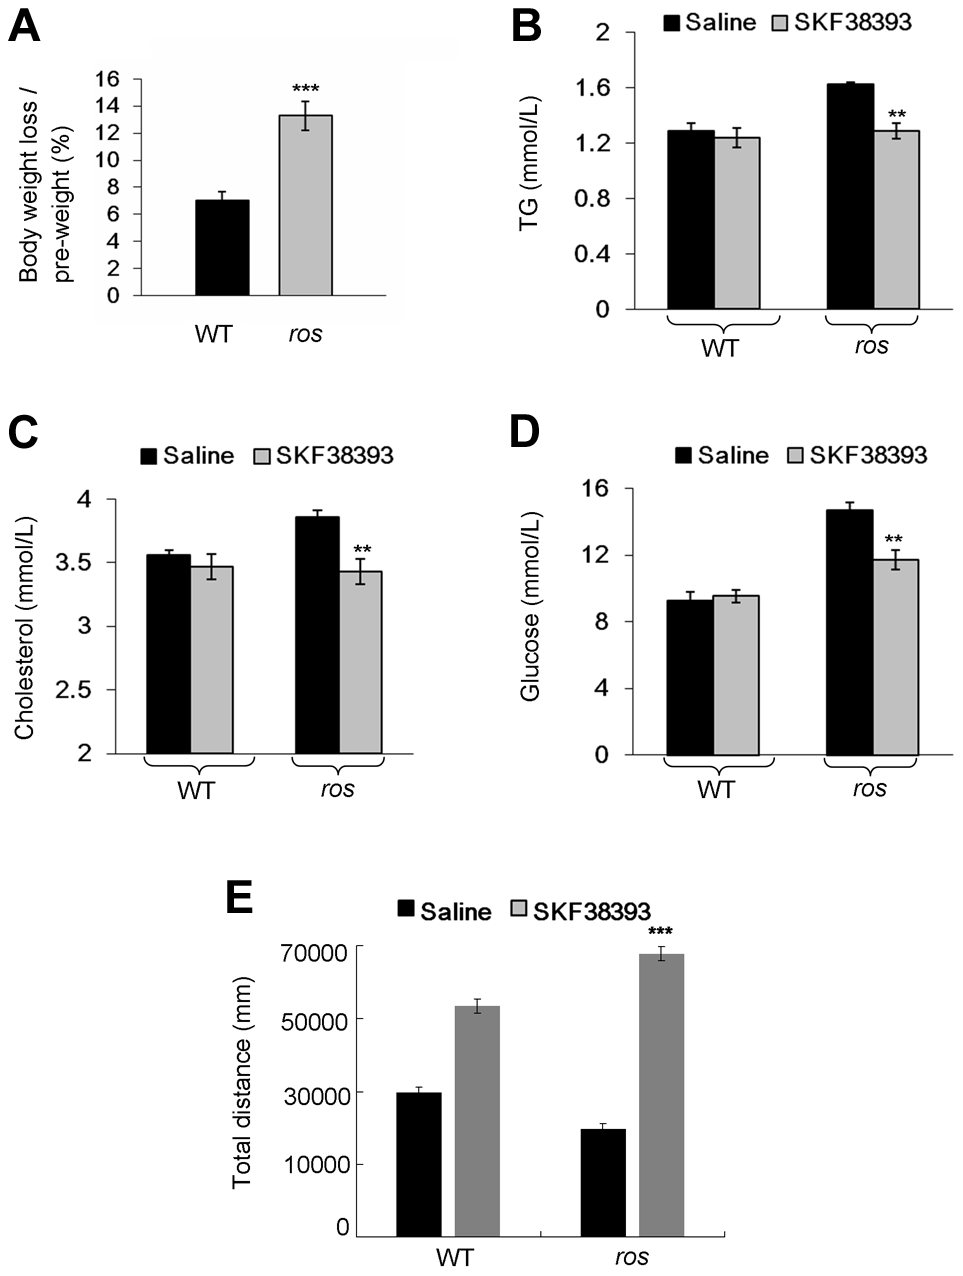 Effect of SKF38393 treatment on body weight loss, serum lipids and glucose, and activity of wild-type or <i>ros</i> mice.